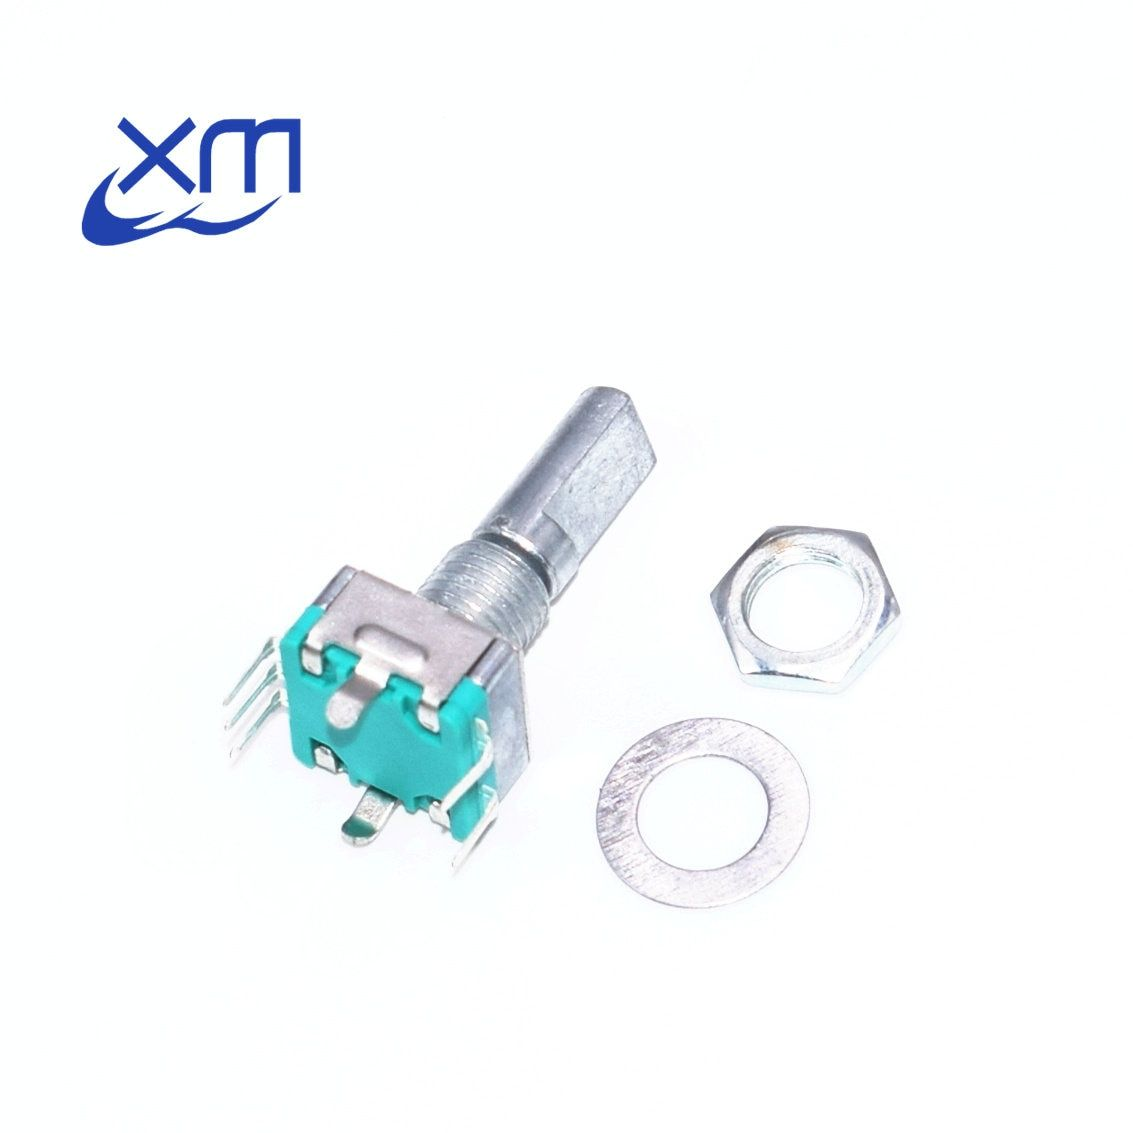 Original,Rotary encoder,code switch/EC11/ audio digital potentiometer,with switch,5Pin, handle length 20mm,free shipping 20pcs